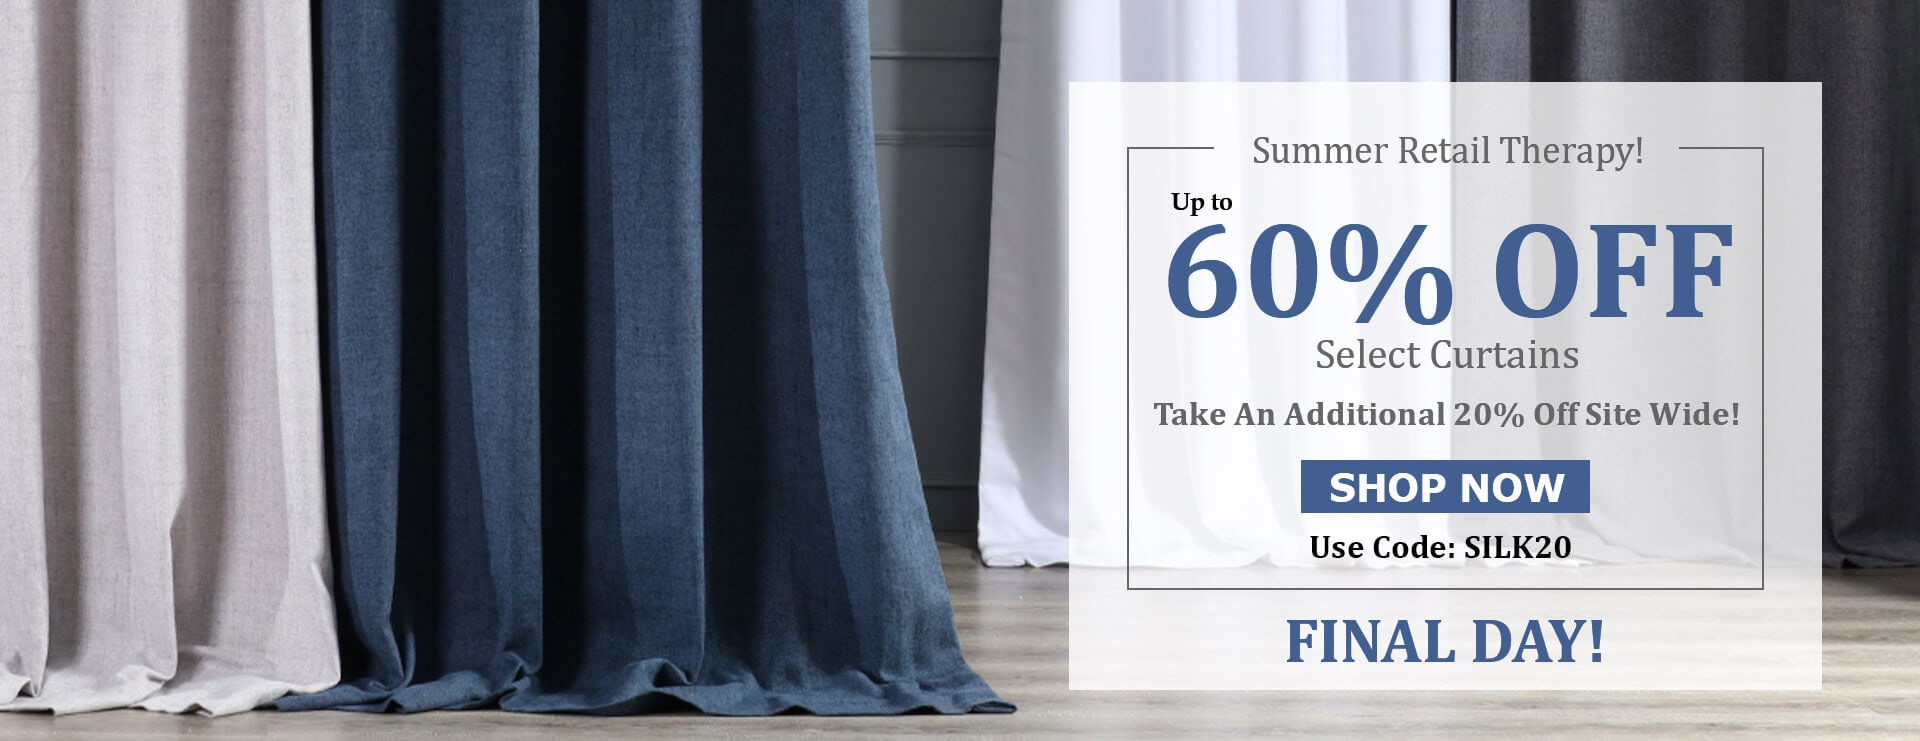 Summer Retail Therapy - Save Up To 60%